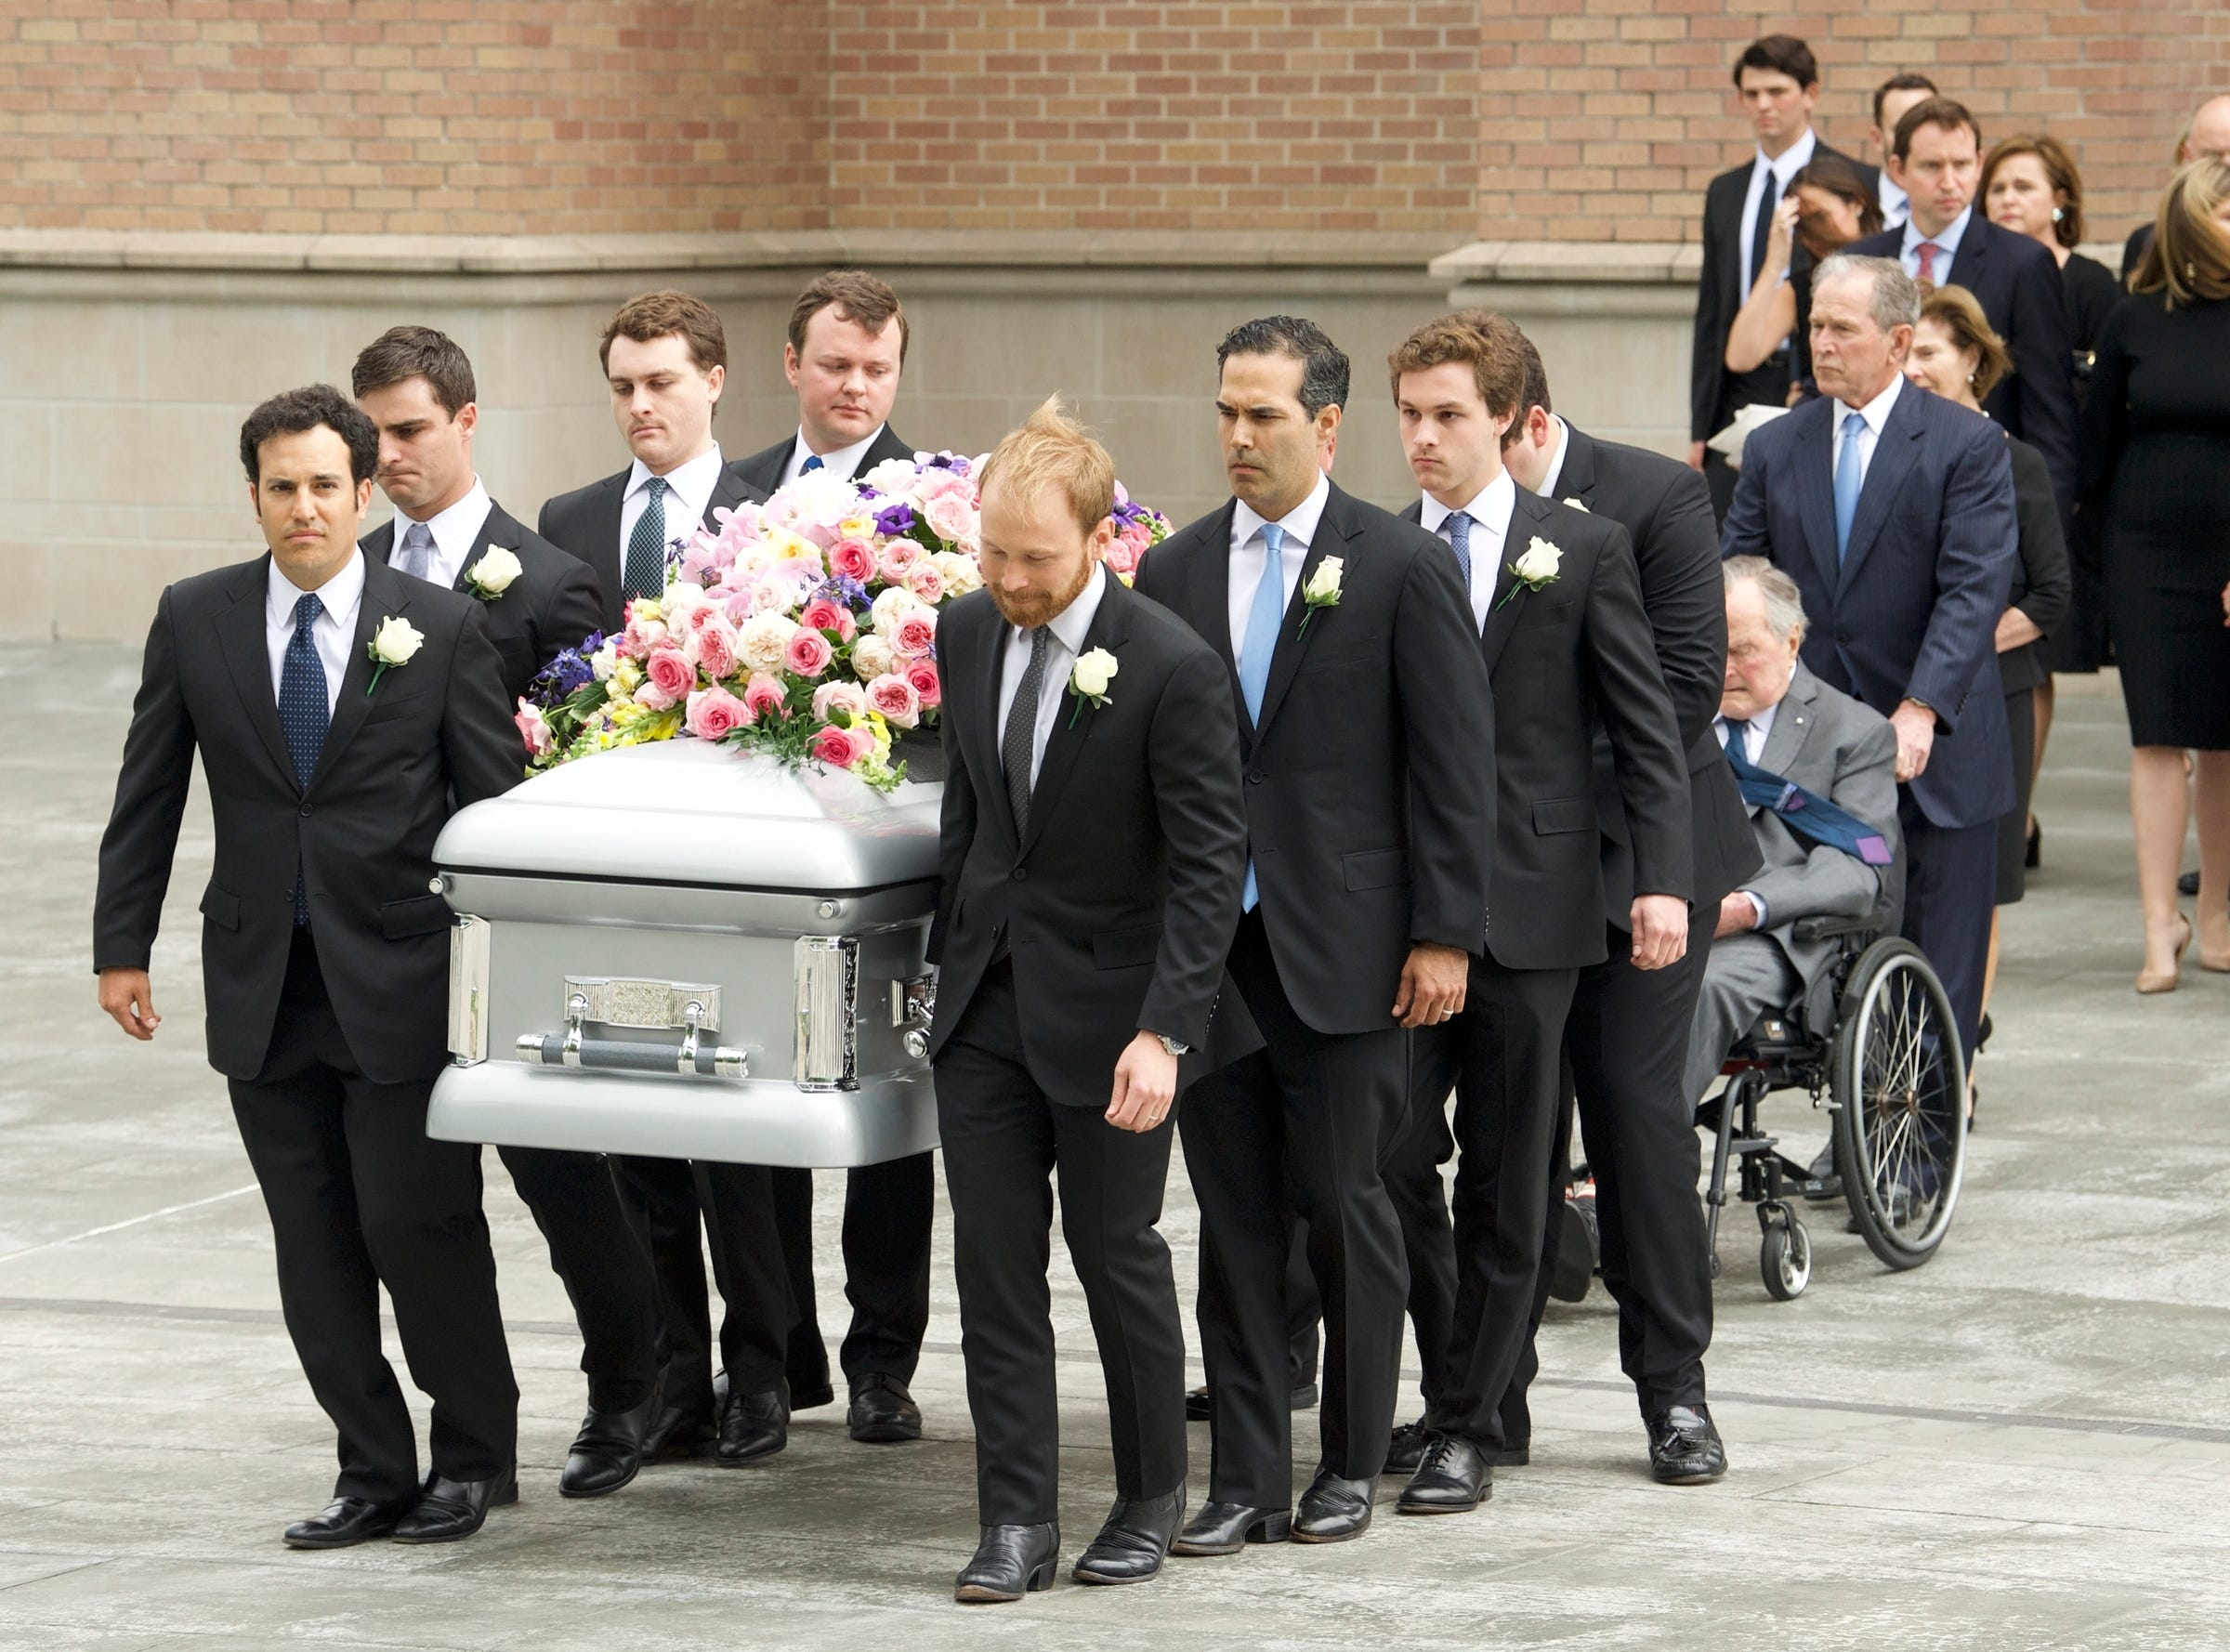 April 21, 2018: Former First Lady Barbara Bush's casket is carried from St. Martin's Episcopal Church by her grandsons. Her husband, former President George H.W. Bush, and son, former President George W. Bush, follow behind.